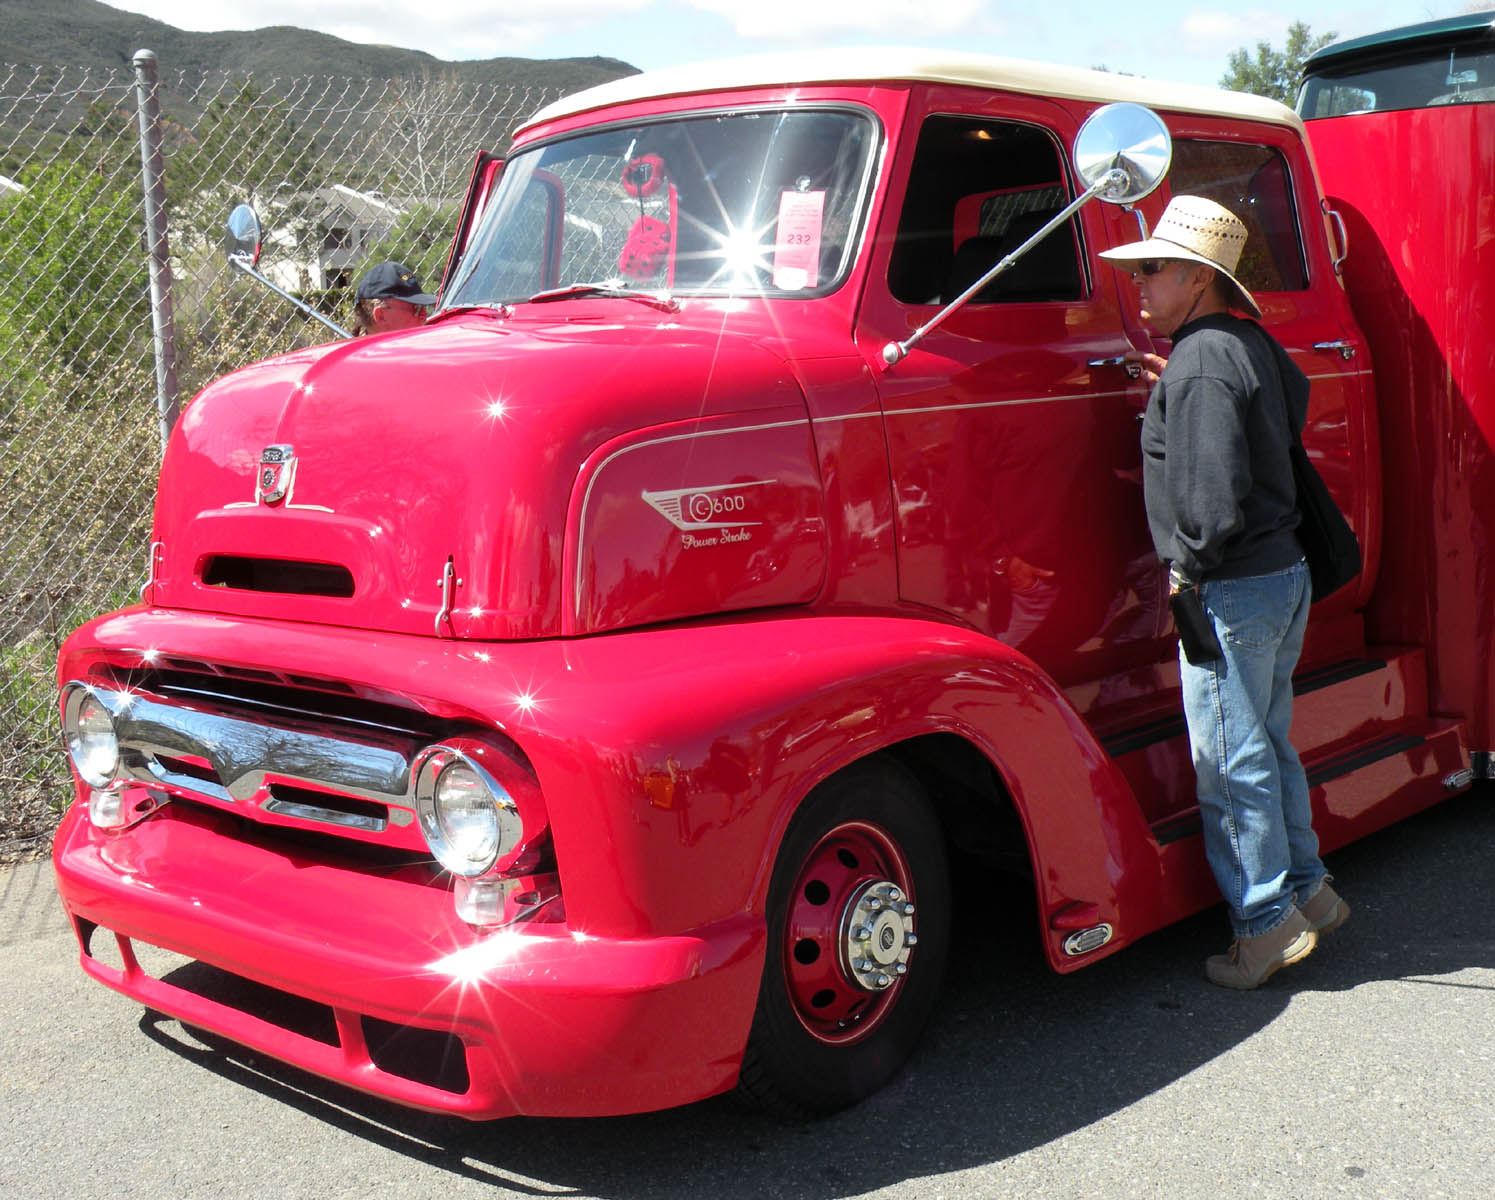 King cab 1950 s coe ford hauler from the temecula rod run